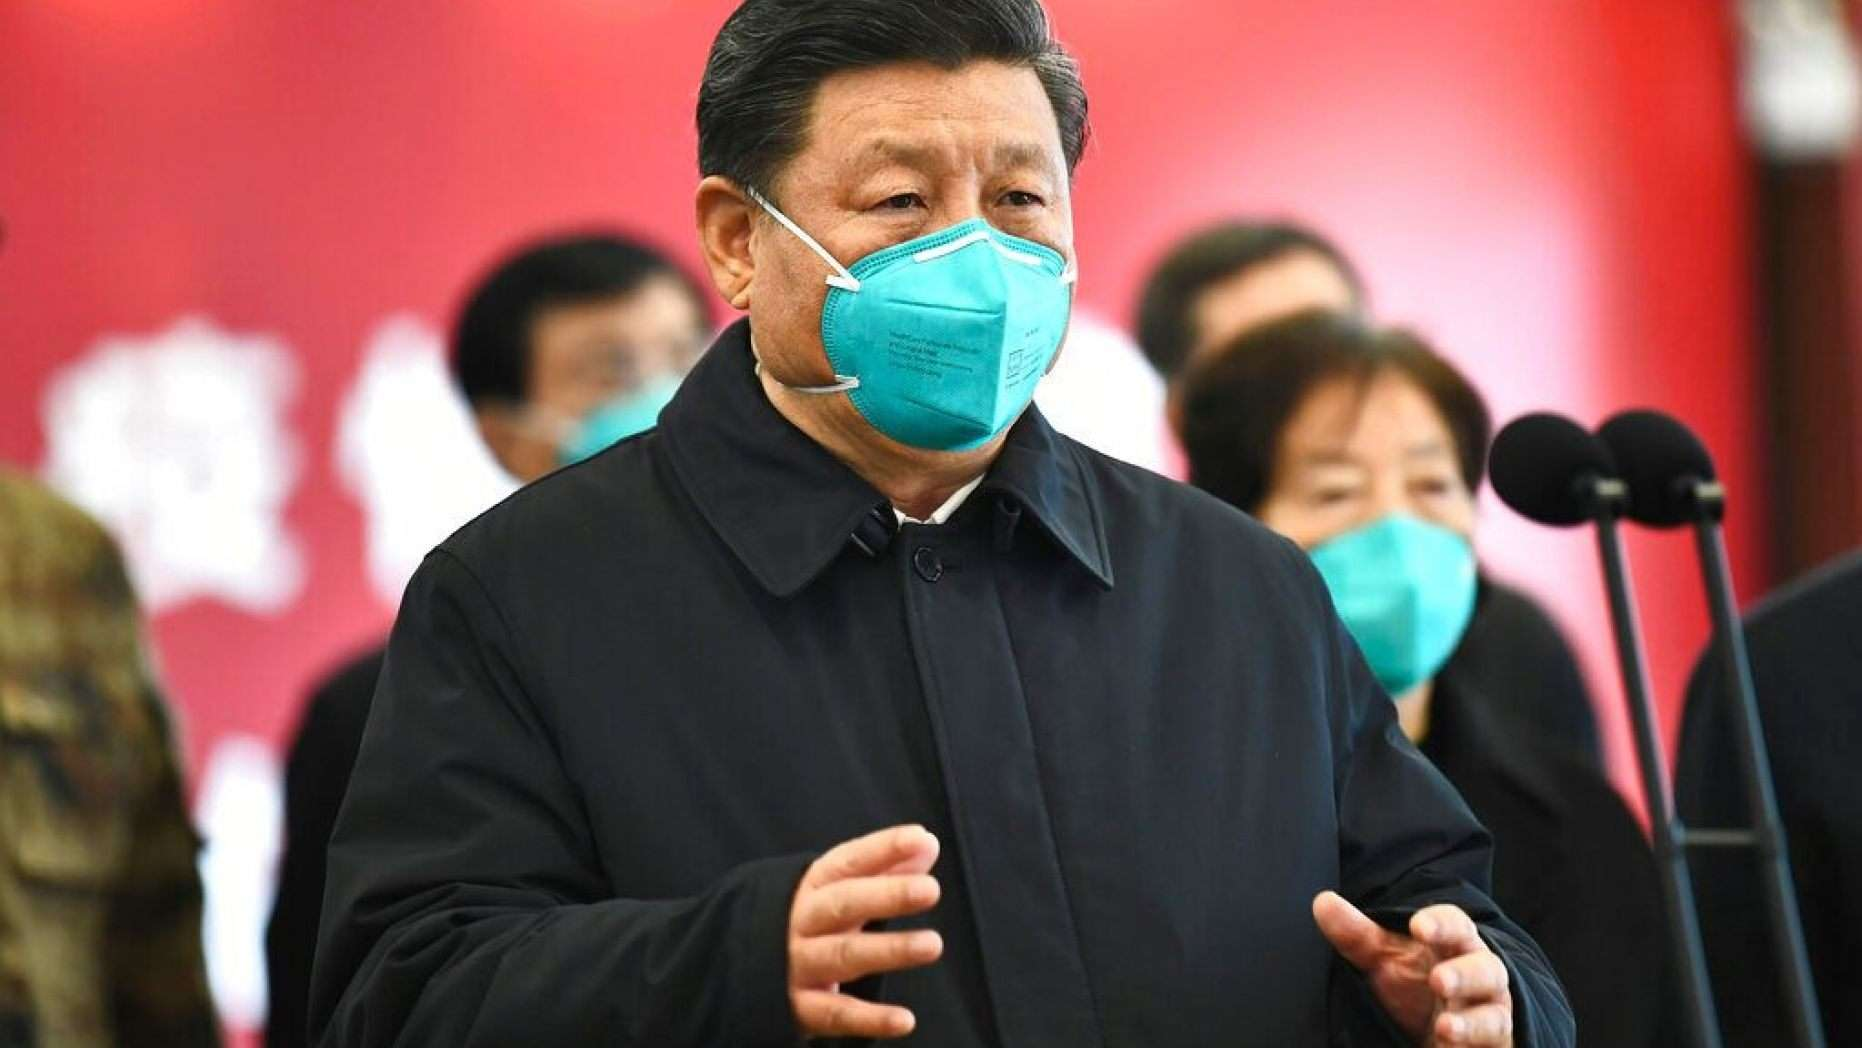 In this Tuesday, March 10, 2020, photo released by China's Xinhua News Agency, Chinese President Xi Jinping talks by video with patients and medical workers at the Huoshenshan Hospital in Wuhan in central China's Hubei Province. (Xie Huanchi/Xinhua via AP)